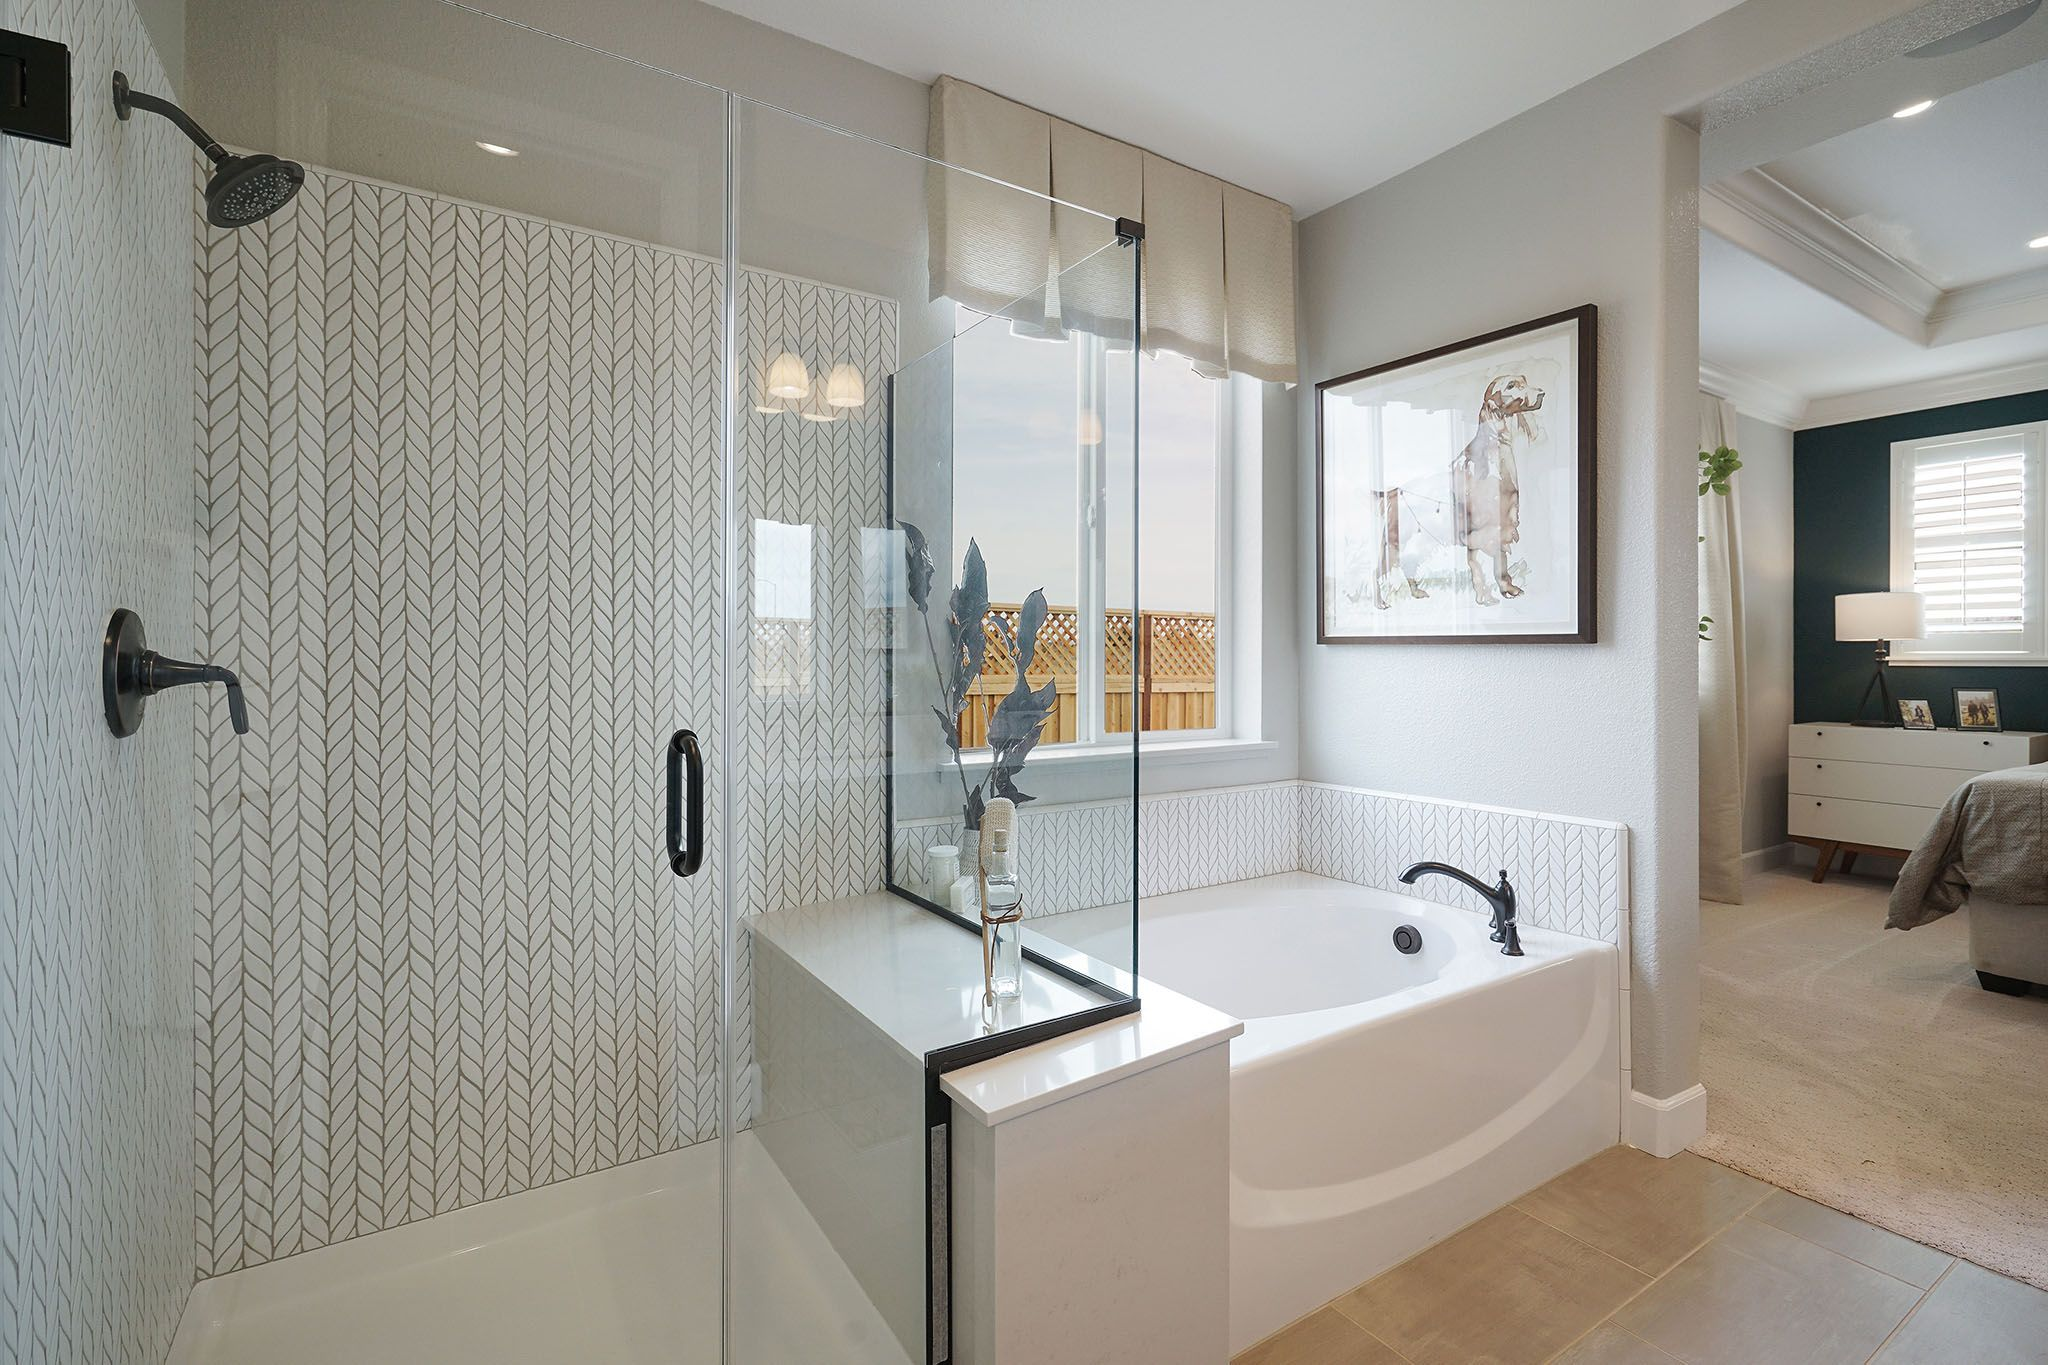 Bathroom featured in the Whitney By Discovery Homes in Chico, CA